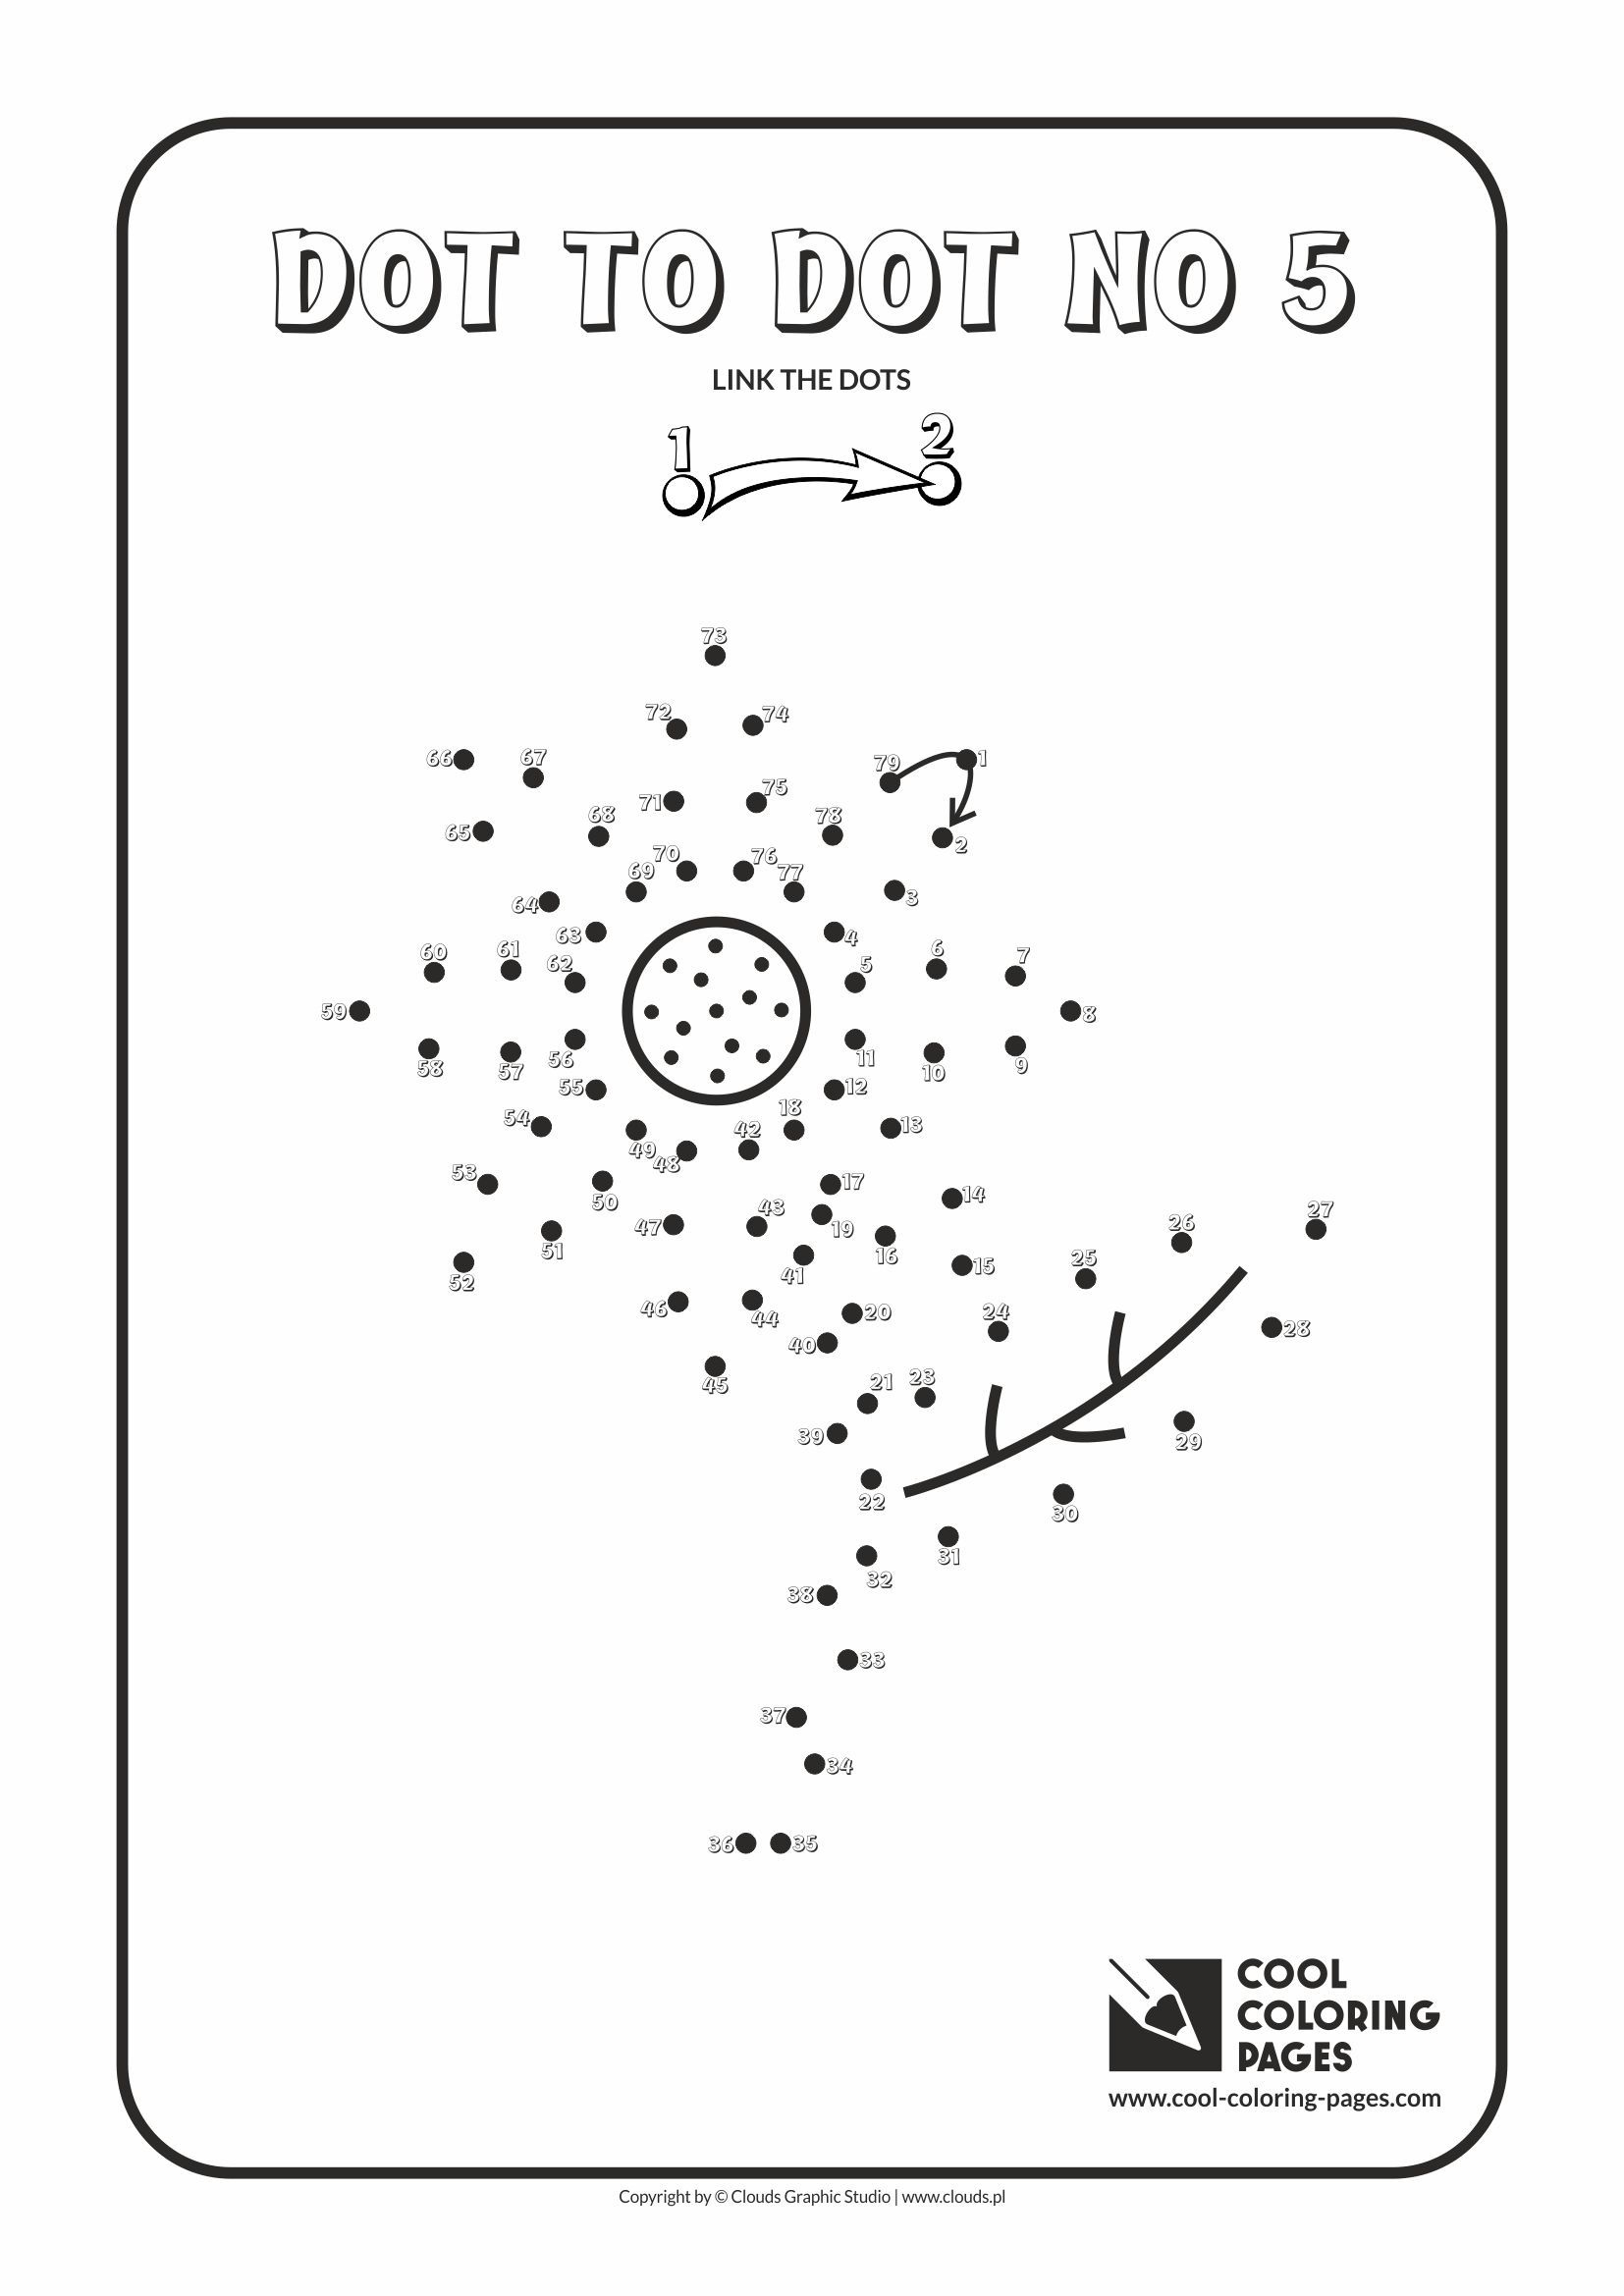 Cool Coloring Pages Dot To Dot Cool Coloring Pages